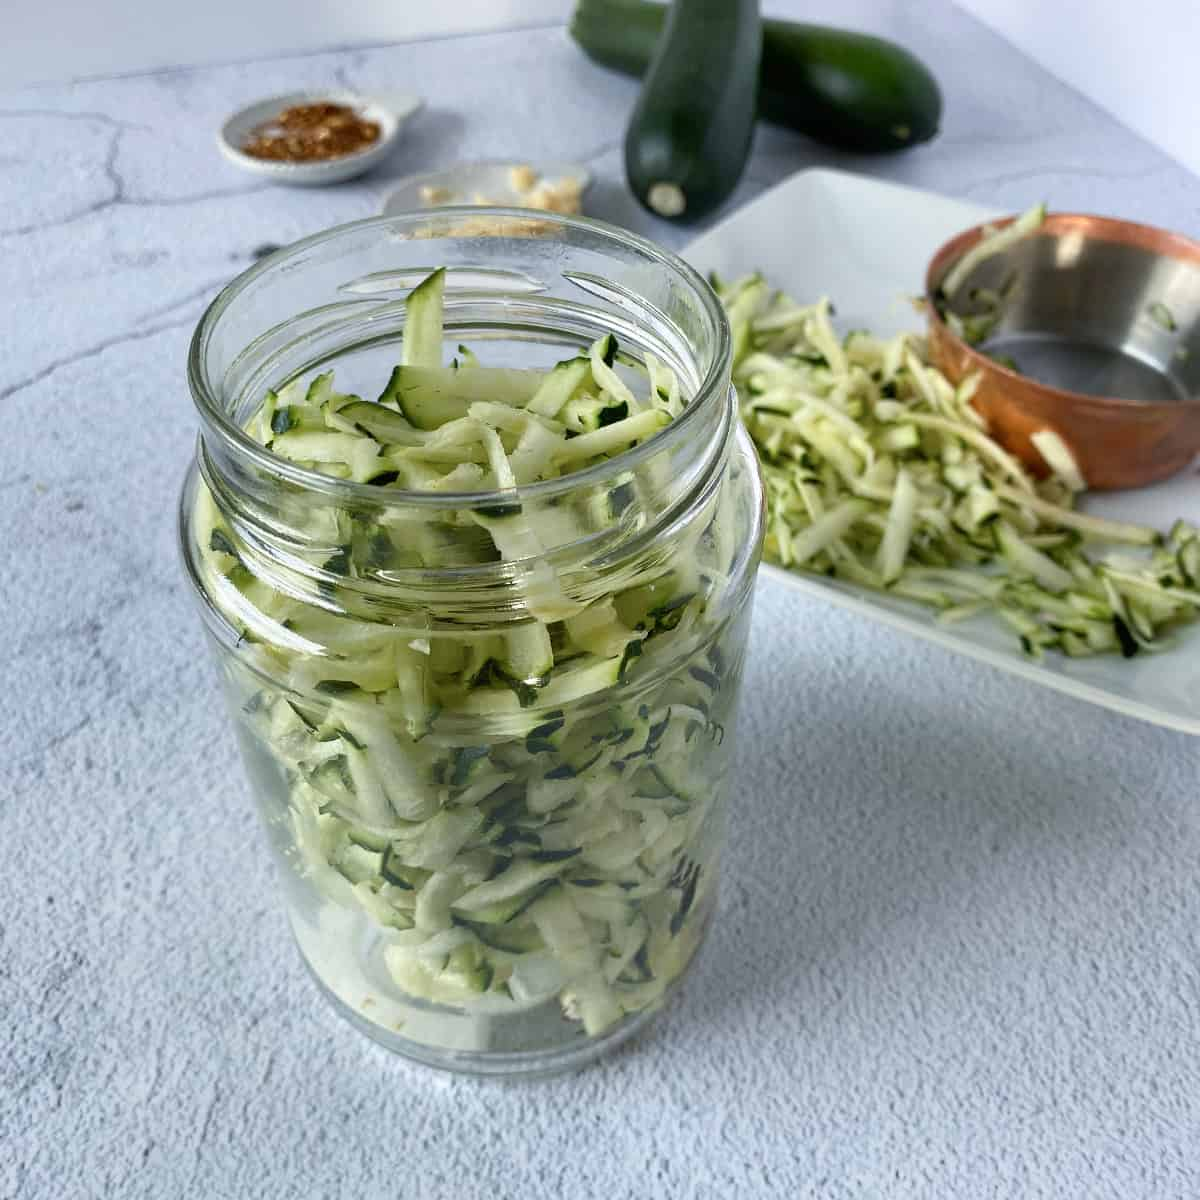 a jar filled with shredded zucchini and other ingredients for pickled zucchini